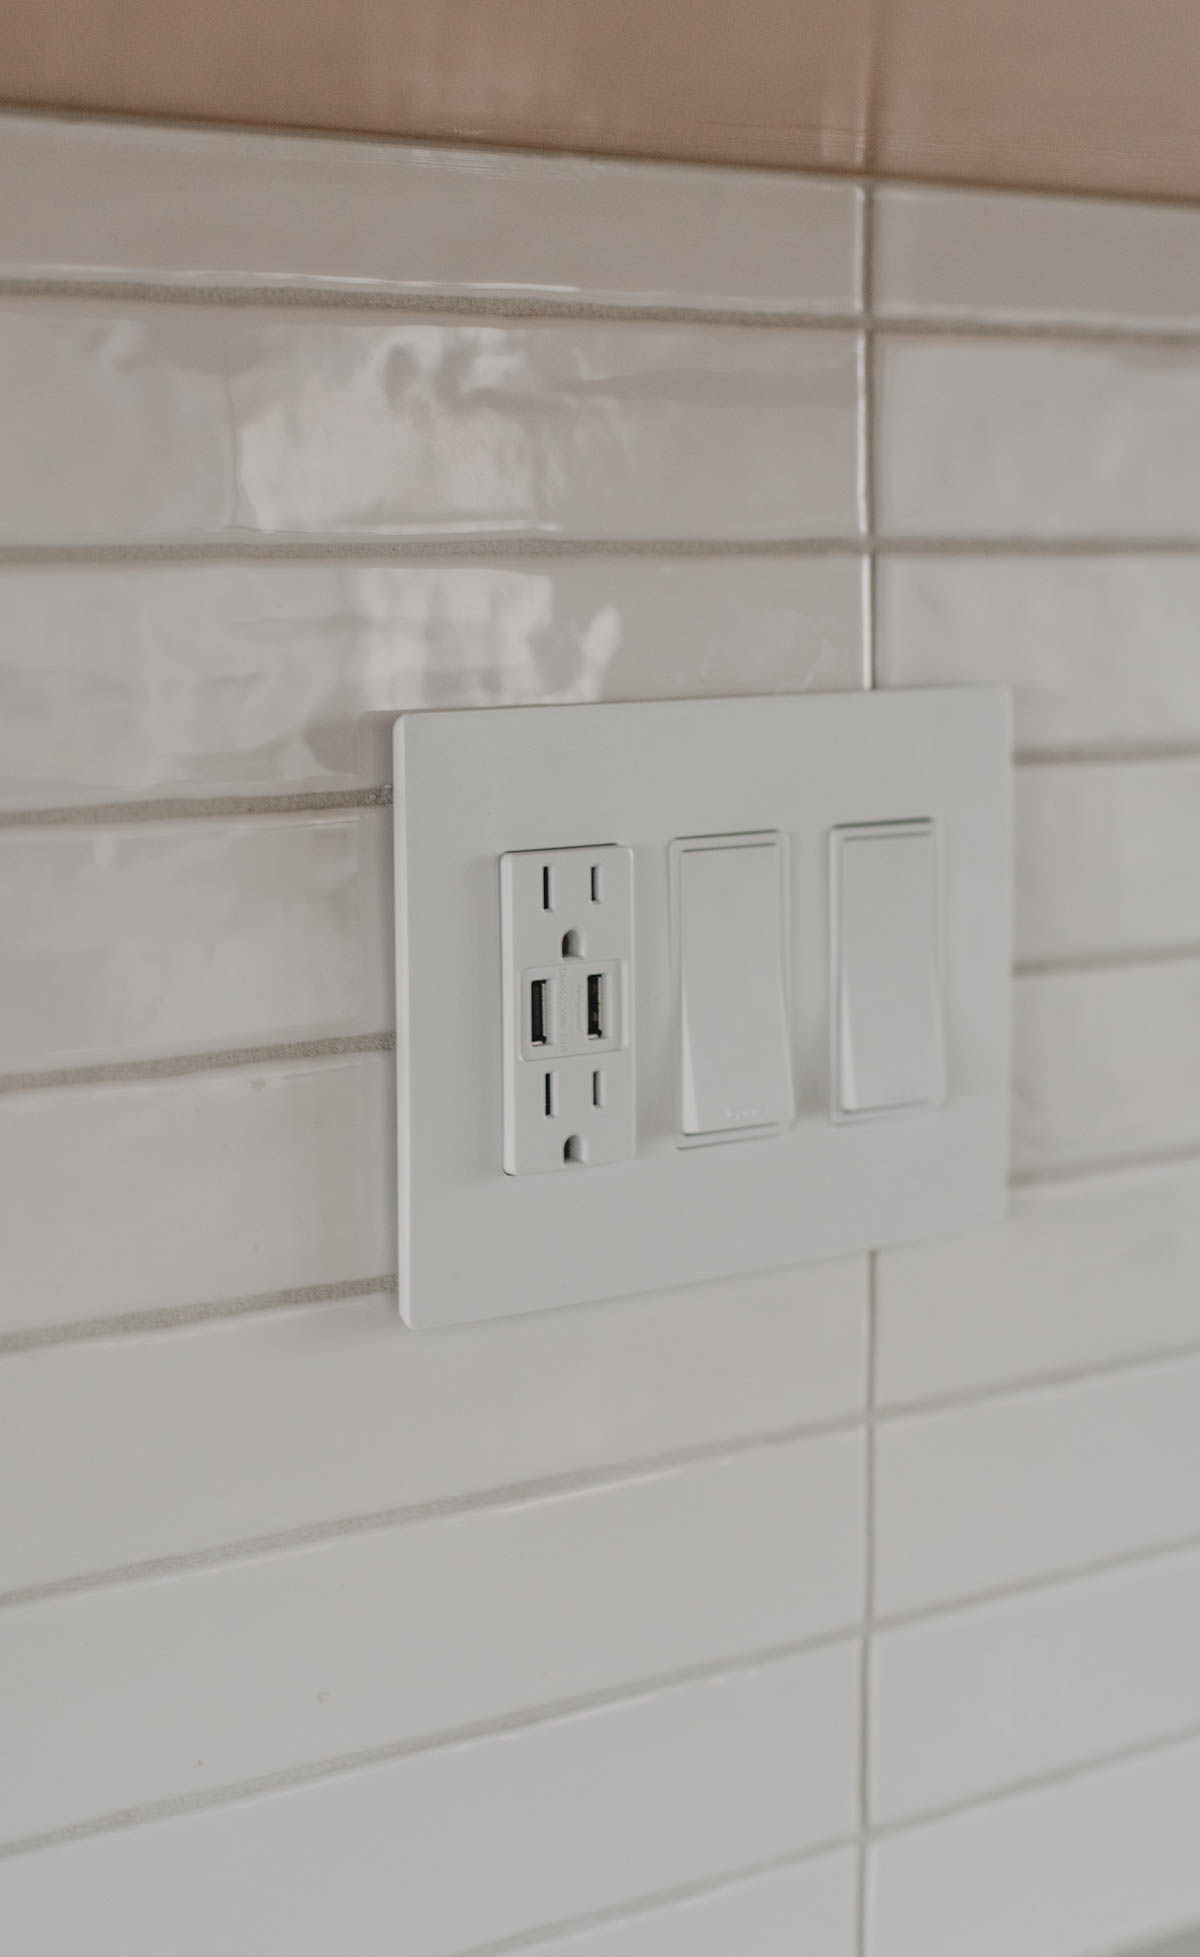 Screwless faceplate on tile- such a high end look, but DIY